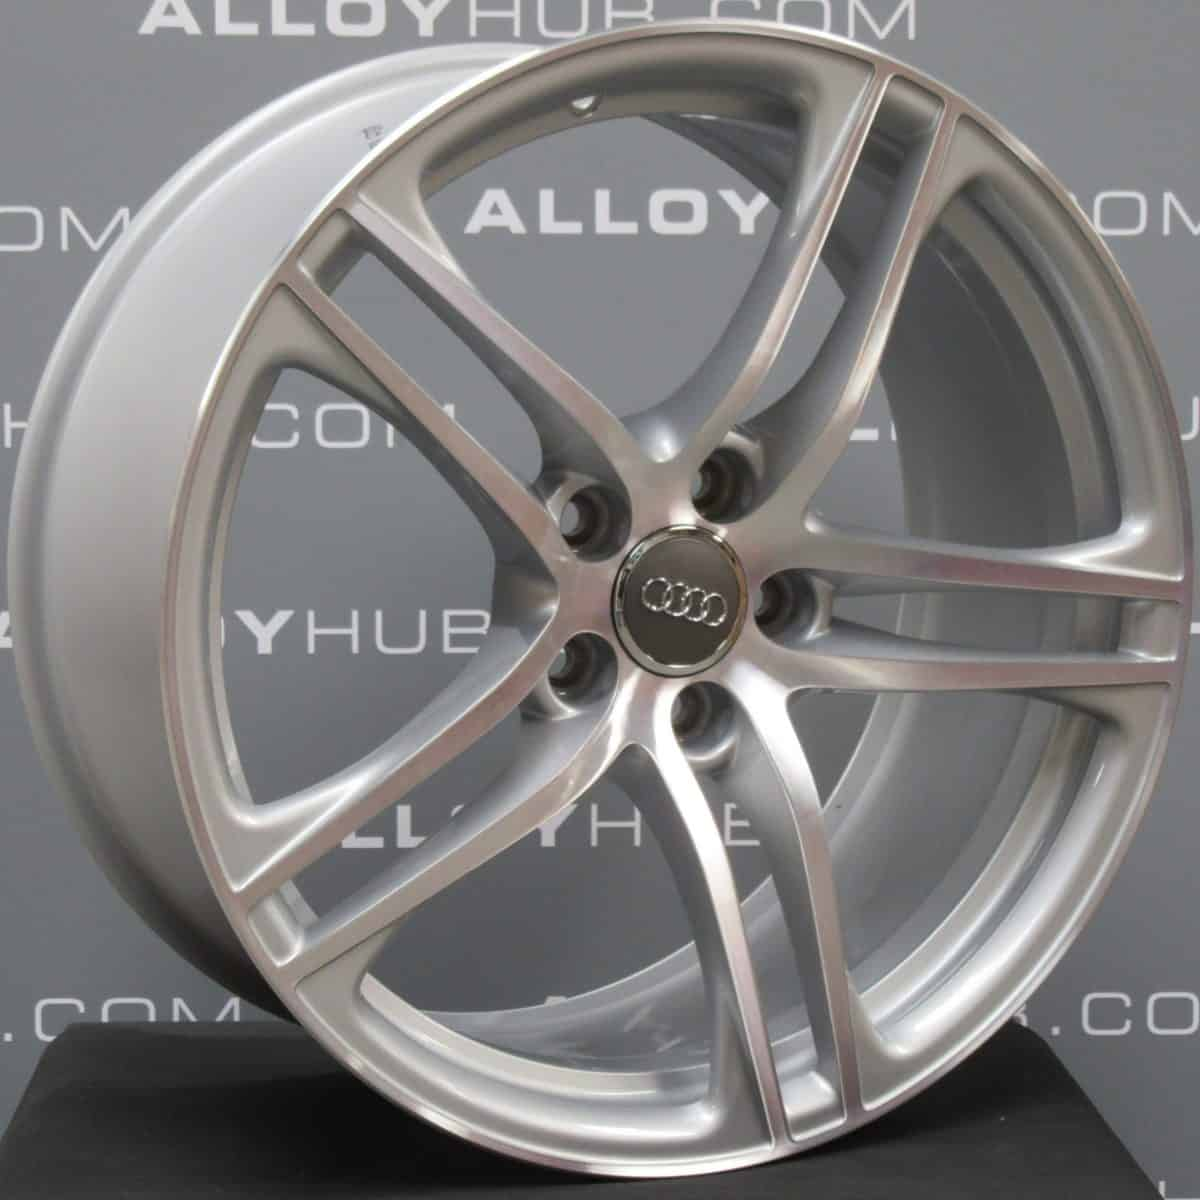 Genuine Audi R8 5 Twin Spoke 19″ Inch Alloy Wheels with Silver & Diamond Turned Finish 420 601 025 AG4 EE, 420 601 025 C